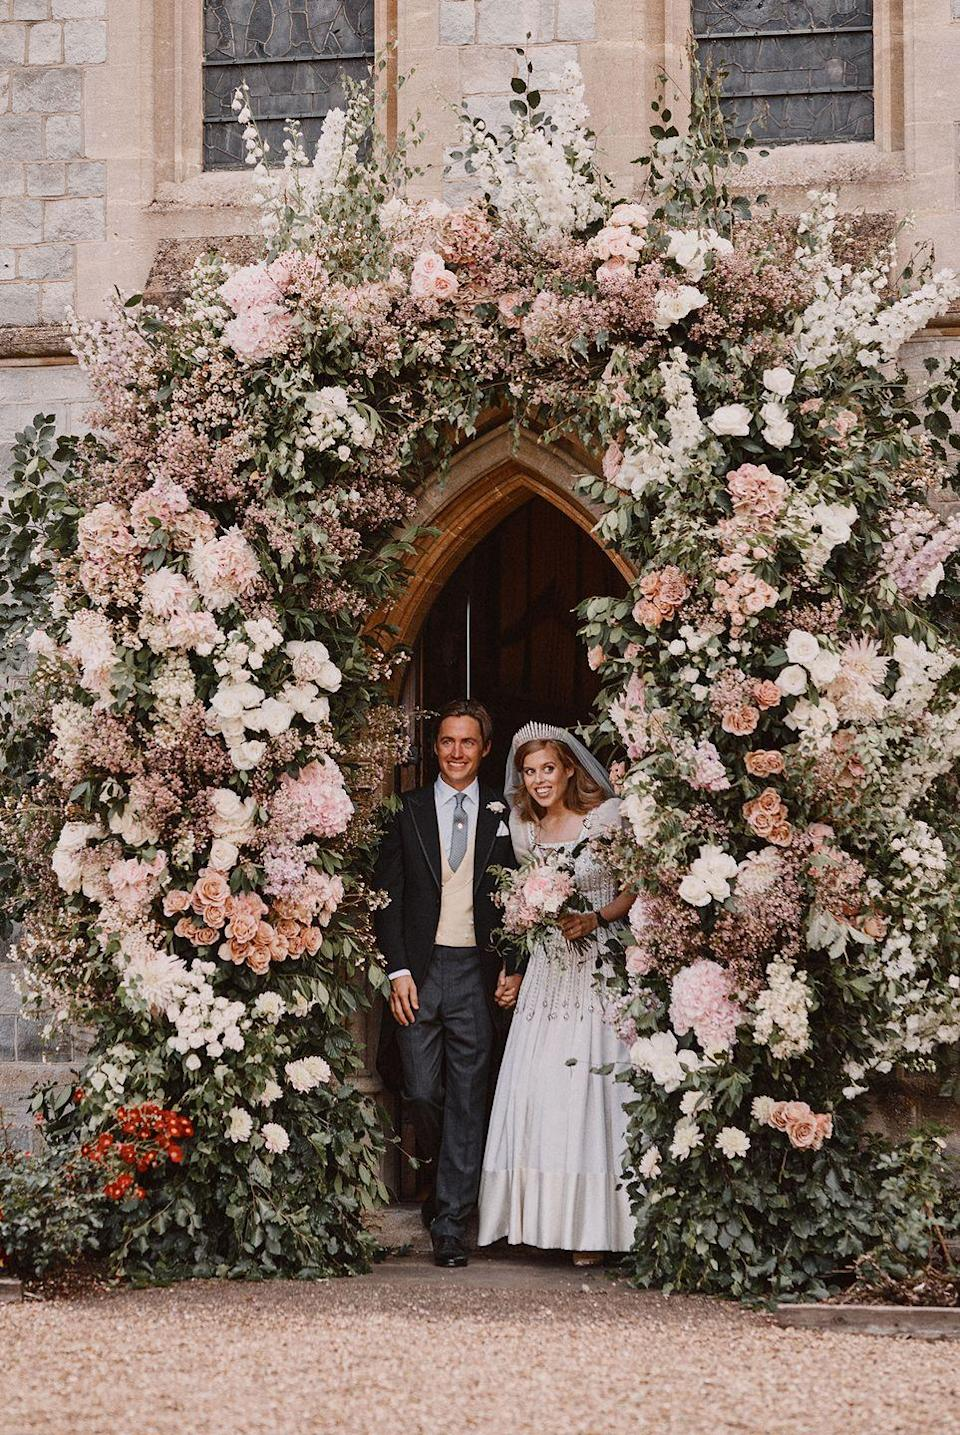 "<p><strong>Wedding date: </strong>7/17/2020</p><p><strong>Wedding tiara: </strong>Several elements of Princess Beatrice's private royal wedding checked the ""something borrowed"" box, but perhaps the most poignant was <a href=""https://www.townandcountrymag.com/society/tradition/a33354075/princess-beatrice-wedding-tiara-queen-mary-fringe/"" rel=""nofollow noopener"" target=""_blank"" data-ylk=""slk:her choice of tiara"" class=""link rapid-noclick-resp"">her choice of tiara</a>. Queen Elizabeth lent her granddaughter the Queen Mary Fringe tiara, the same sparkly accessory she had worn on her own wedding day in 1947.</p>"